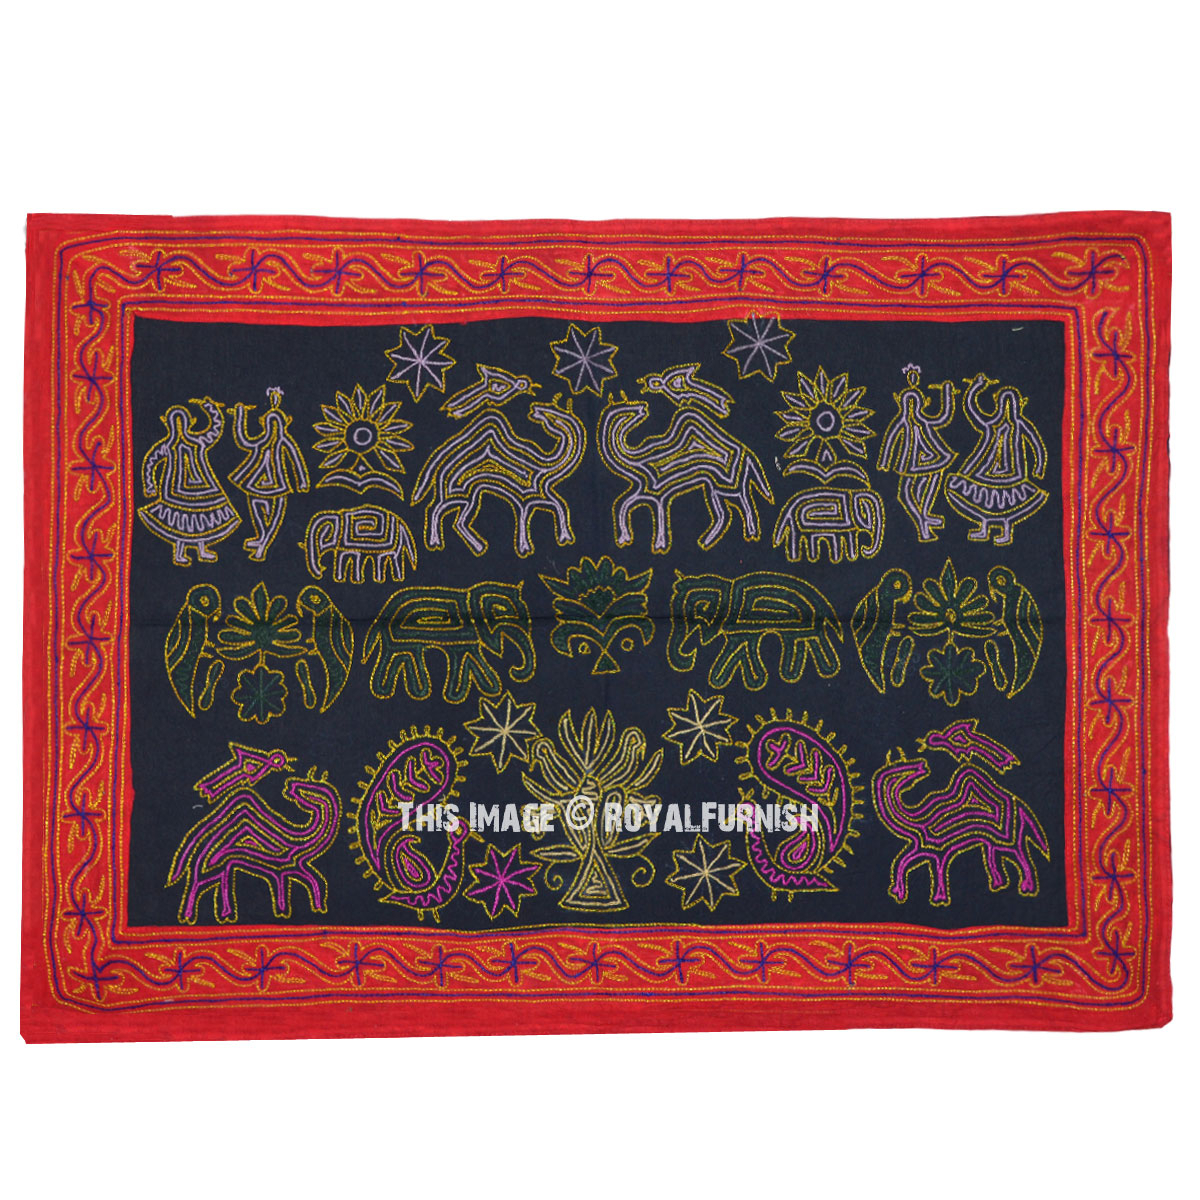 Indian Bohemian Hand Embroidered Fabric Wall Hanging Tapestry Inside 2018 Blended Fabric Southwestern Bohemian Wall Hangings (View 12 of 20)